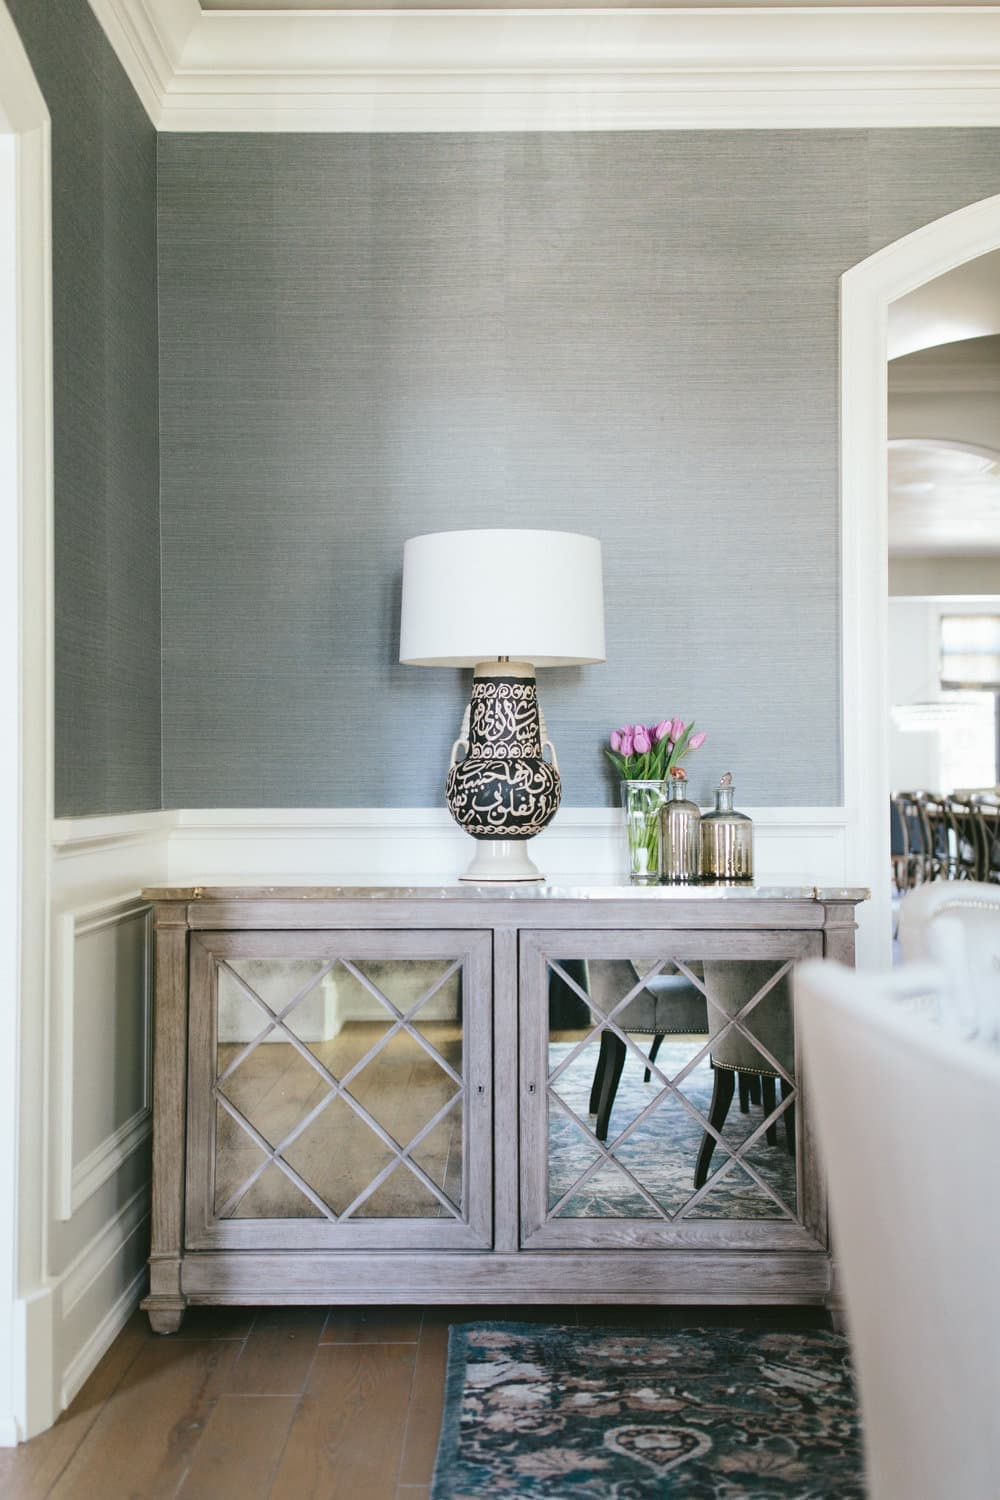 this is an example of provence style furniture by kate marker interiors